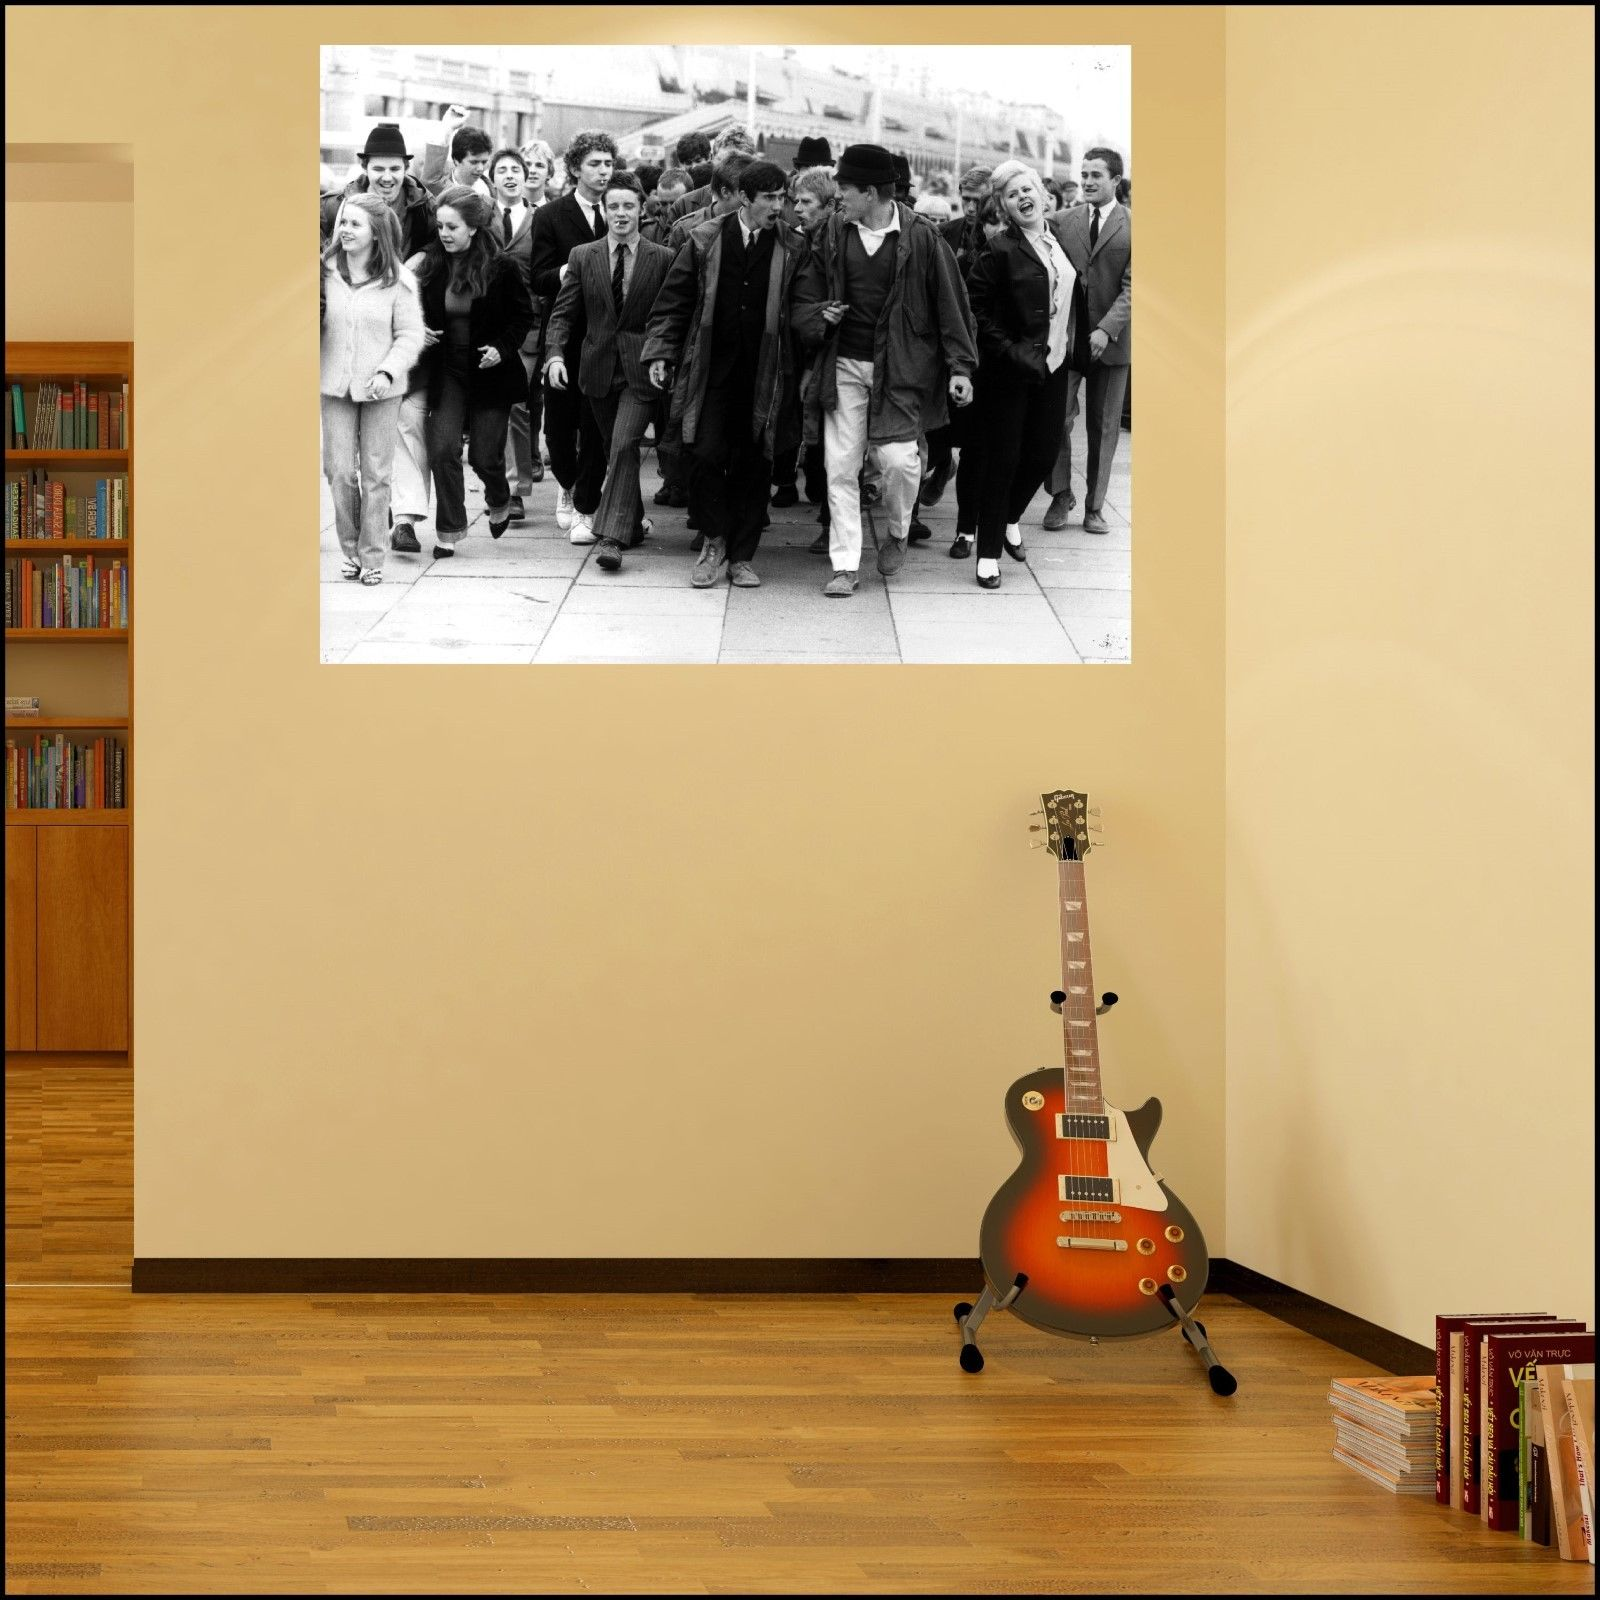 Quadraphenia film crowd photo wall art sticker choice 7 for Audience wall mural